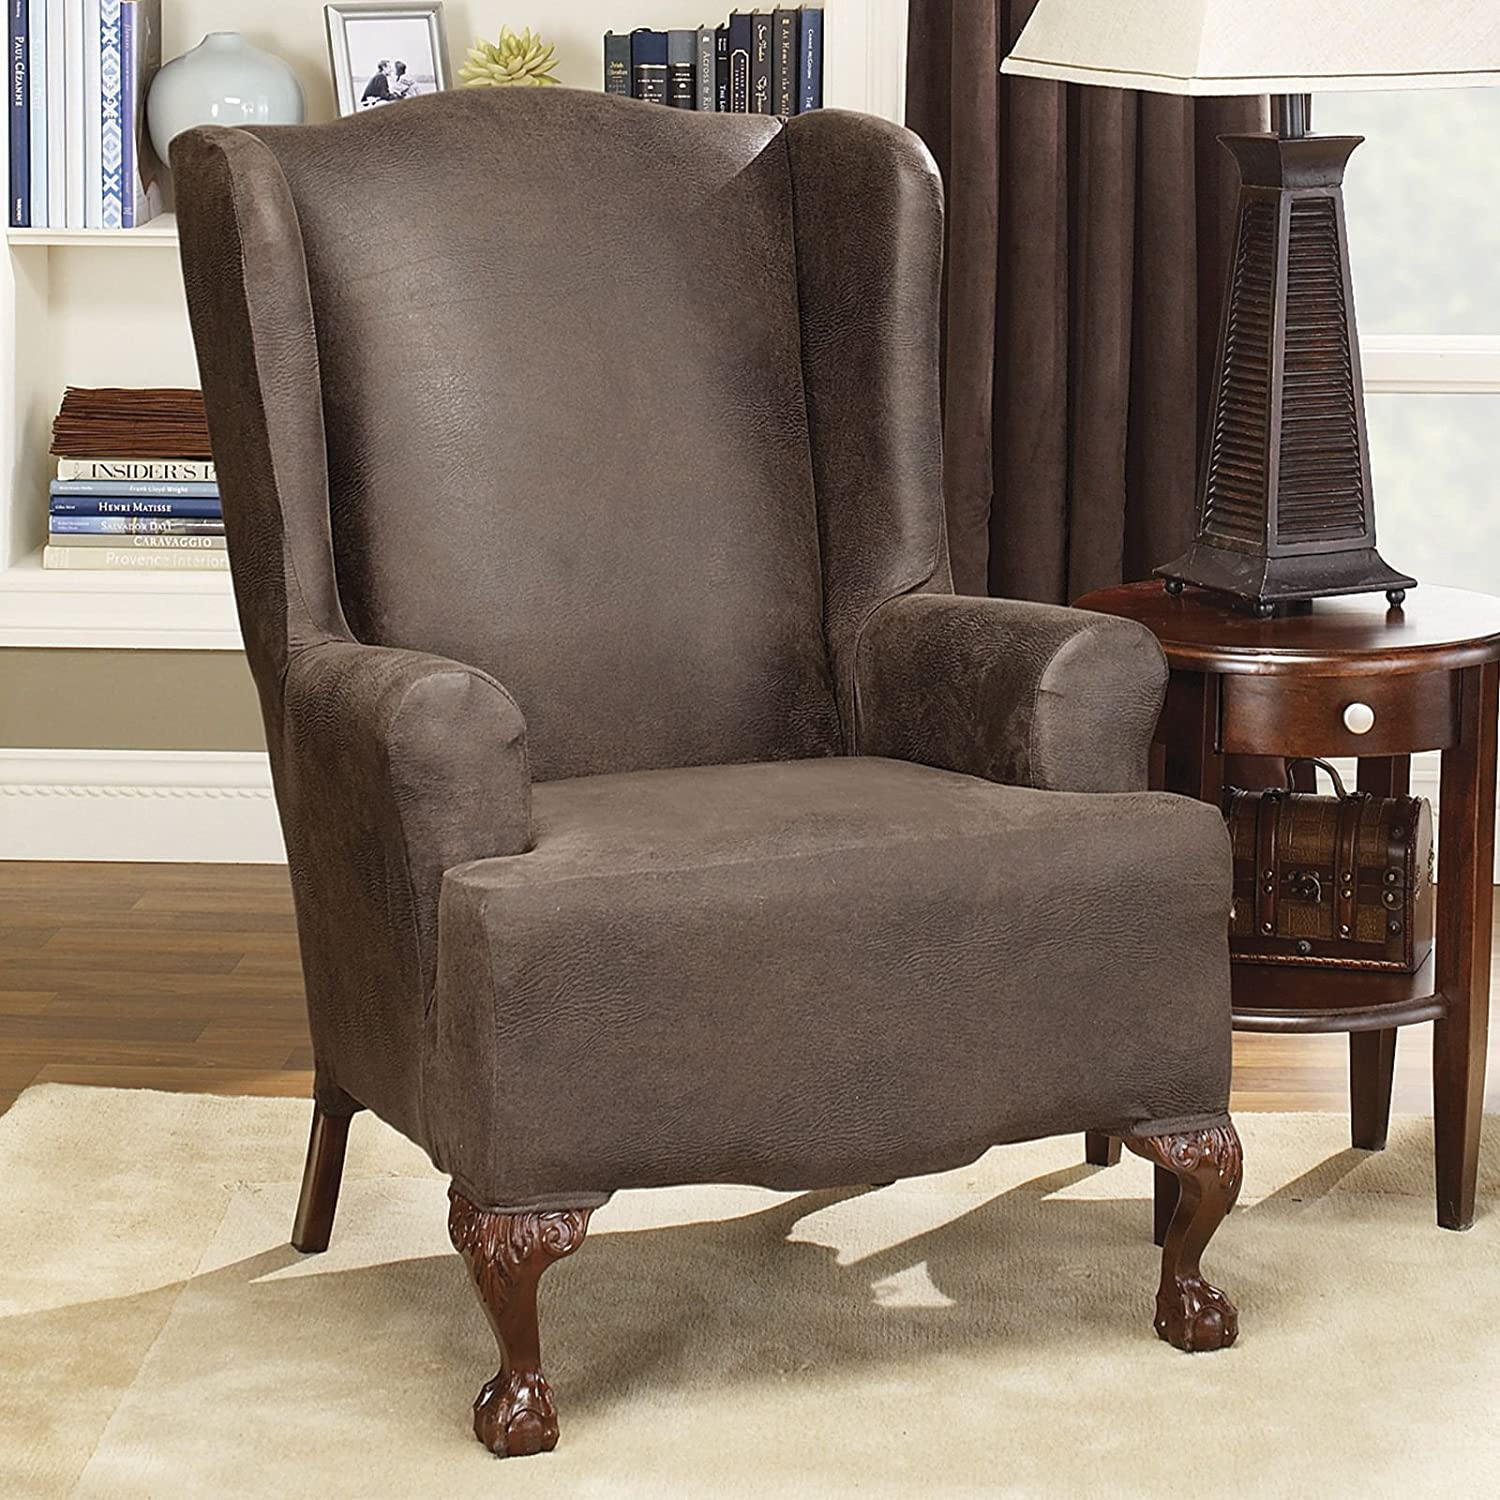 Etonnant Amazon.com: Sure Fit Stretch Leather   Ottoman Slipcover   Brown (SF37322):  Home U0026 Kitchen